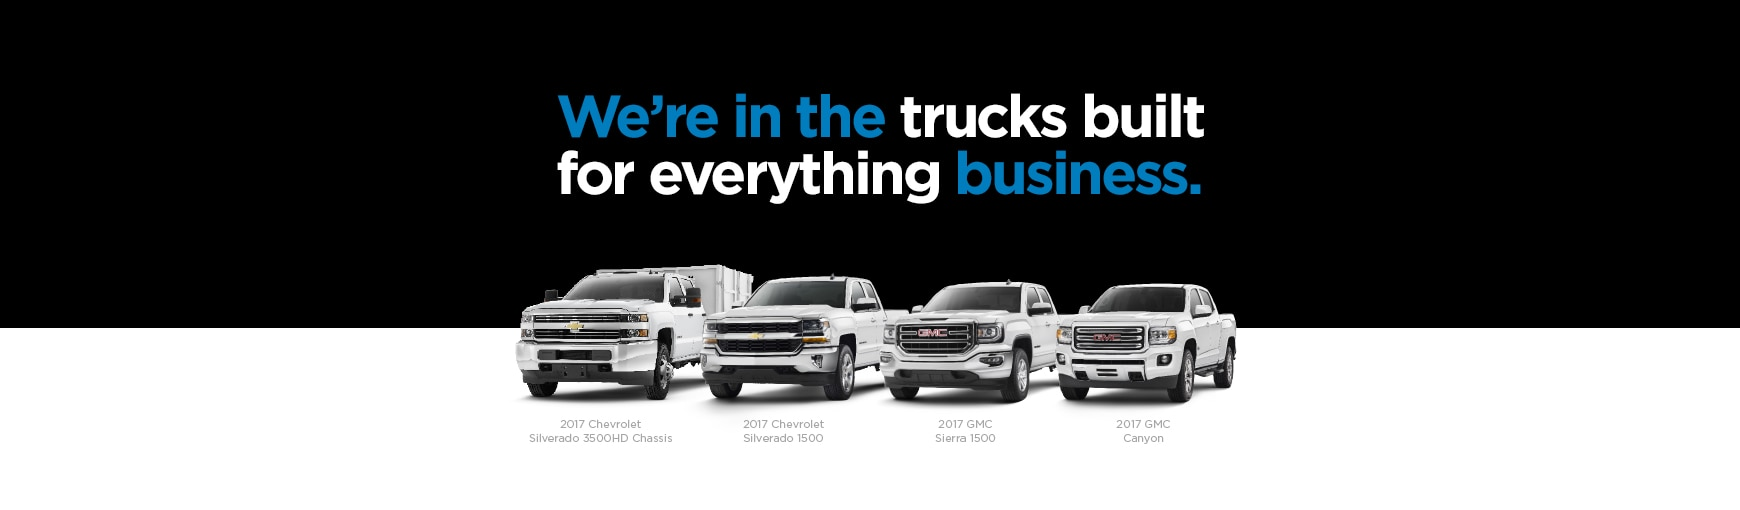 The GM Fleet lineup of GMC and Chevrolet trucks.